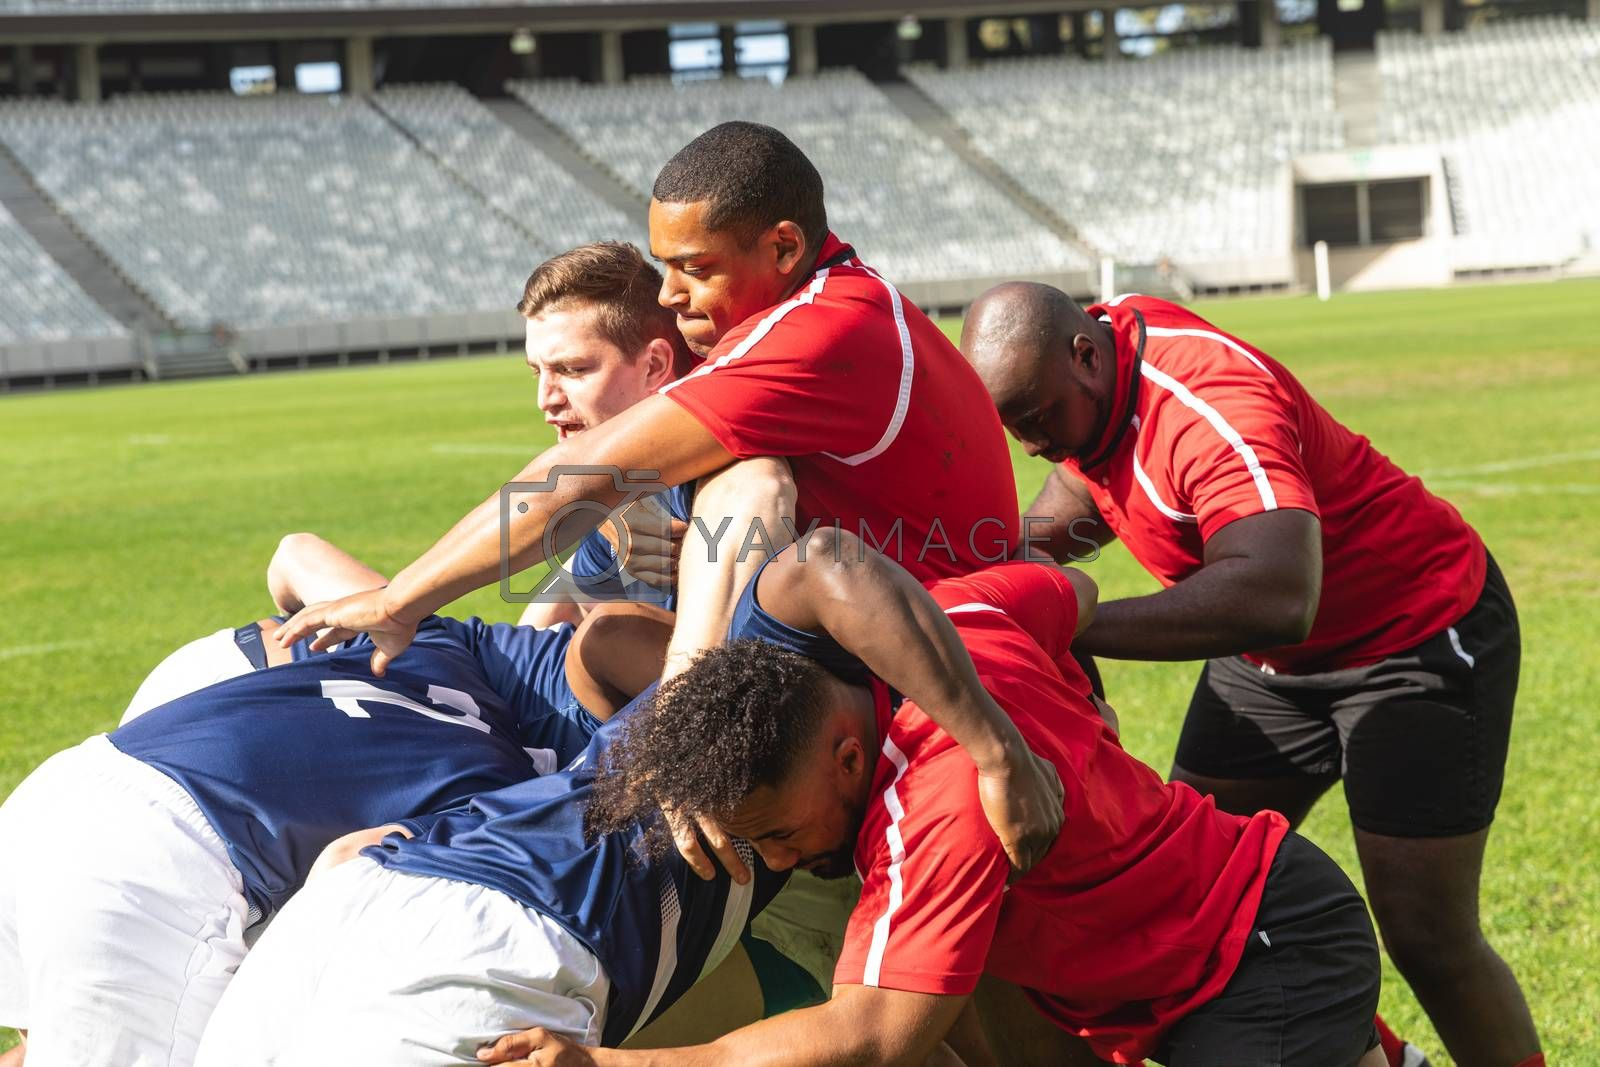 Front view of group of diverse rugby players trying to get the rugby ball from each other in stadium on a sunny day.